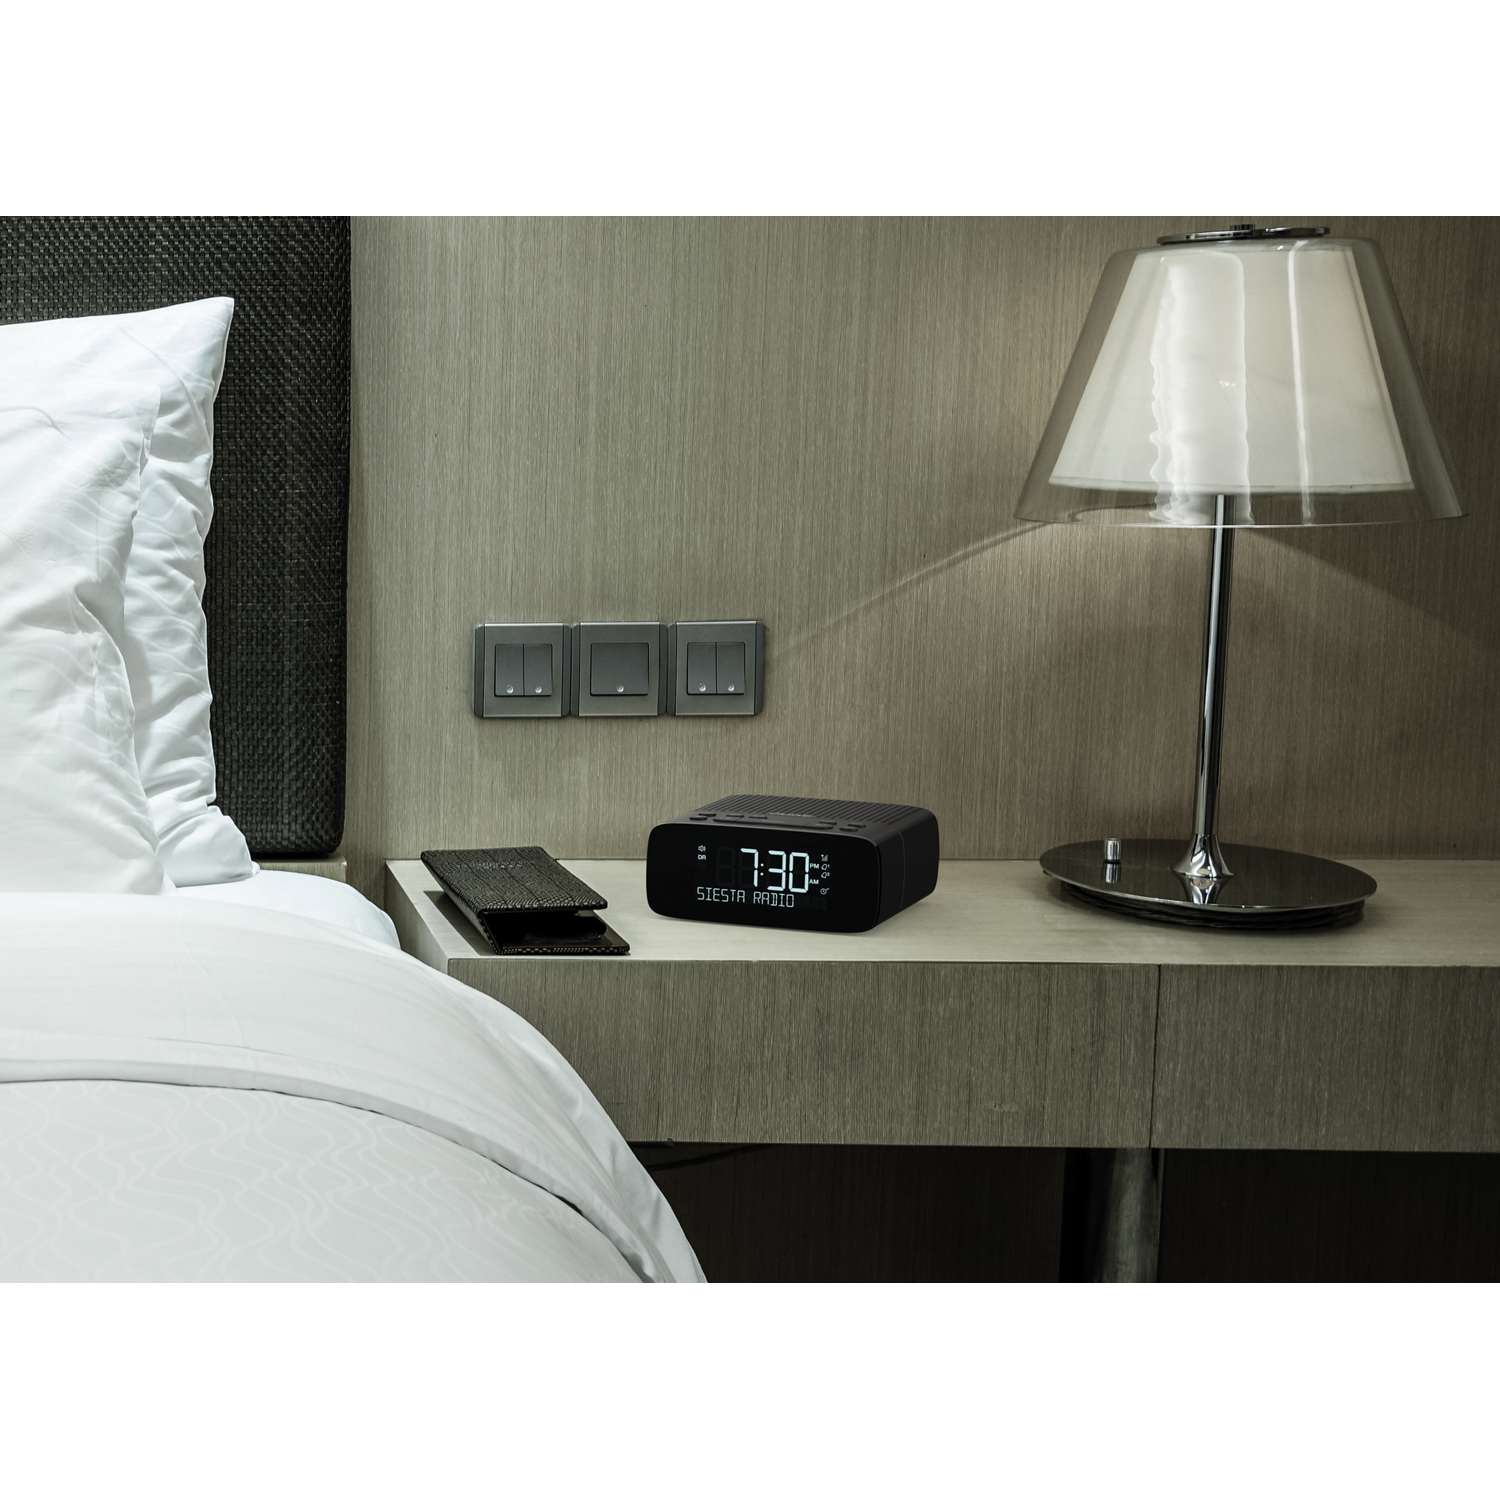 pure siesta series 2 dab digital clock fm alarm clock portable radio in graphite ebay. Black Bedroom Furniture Sets. Home Design Ideas